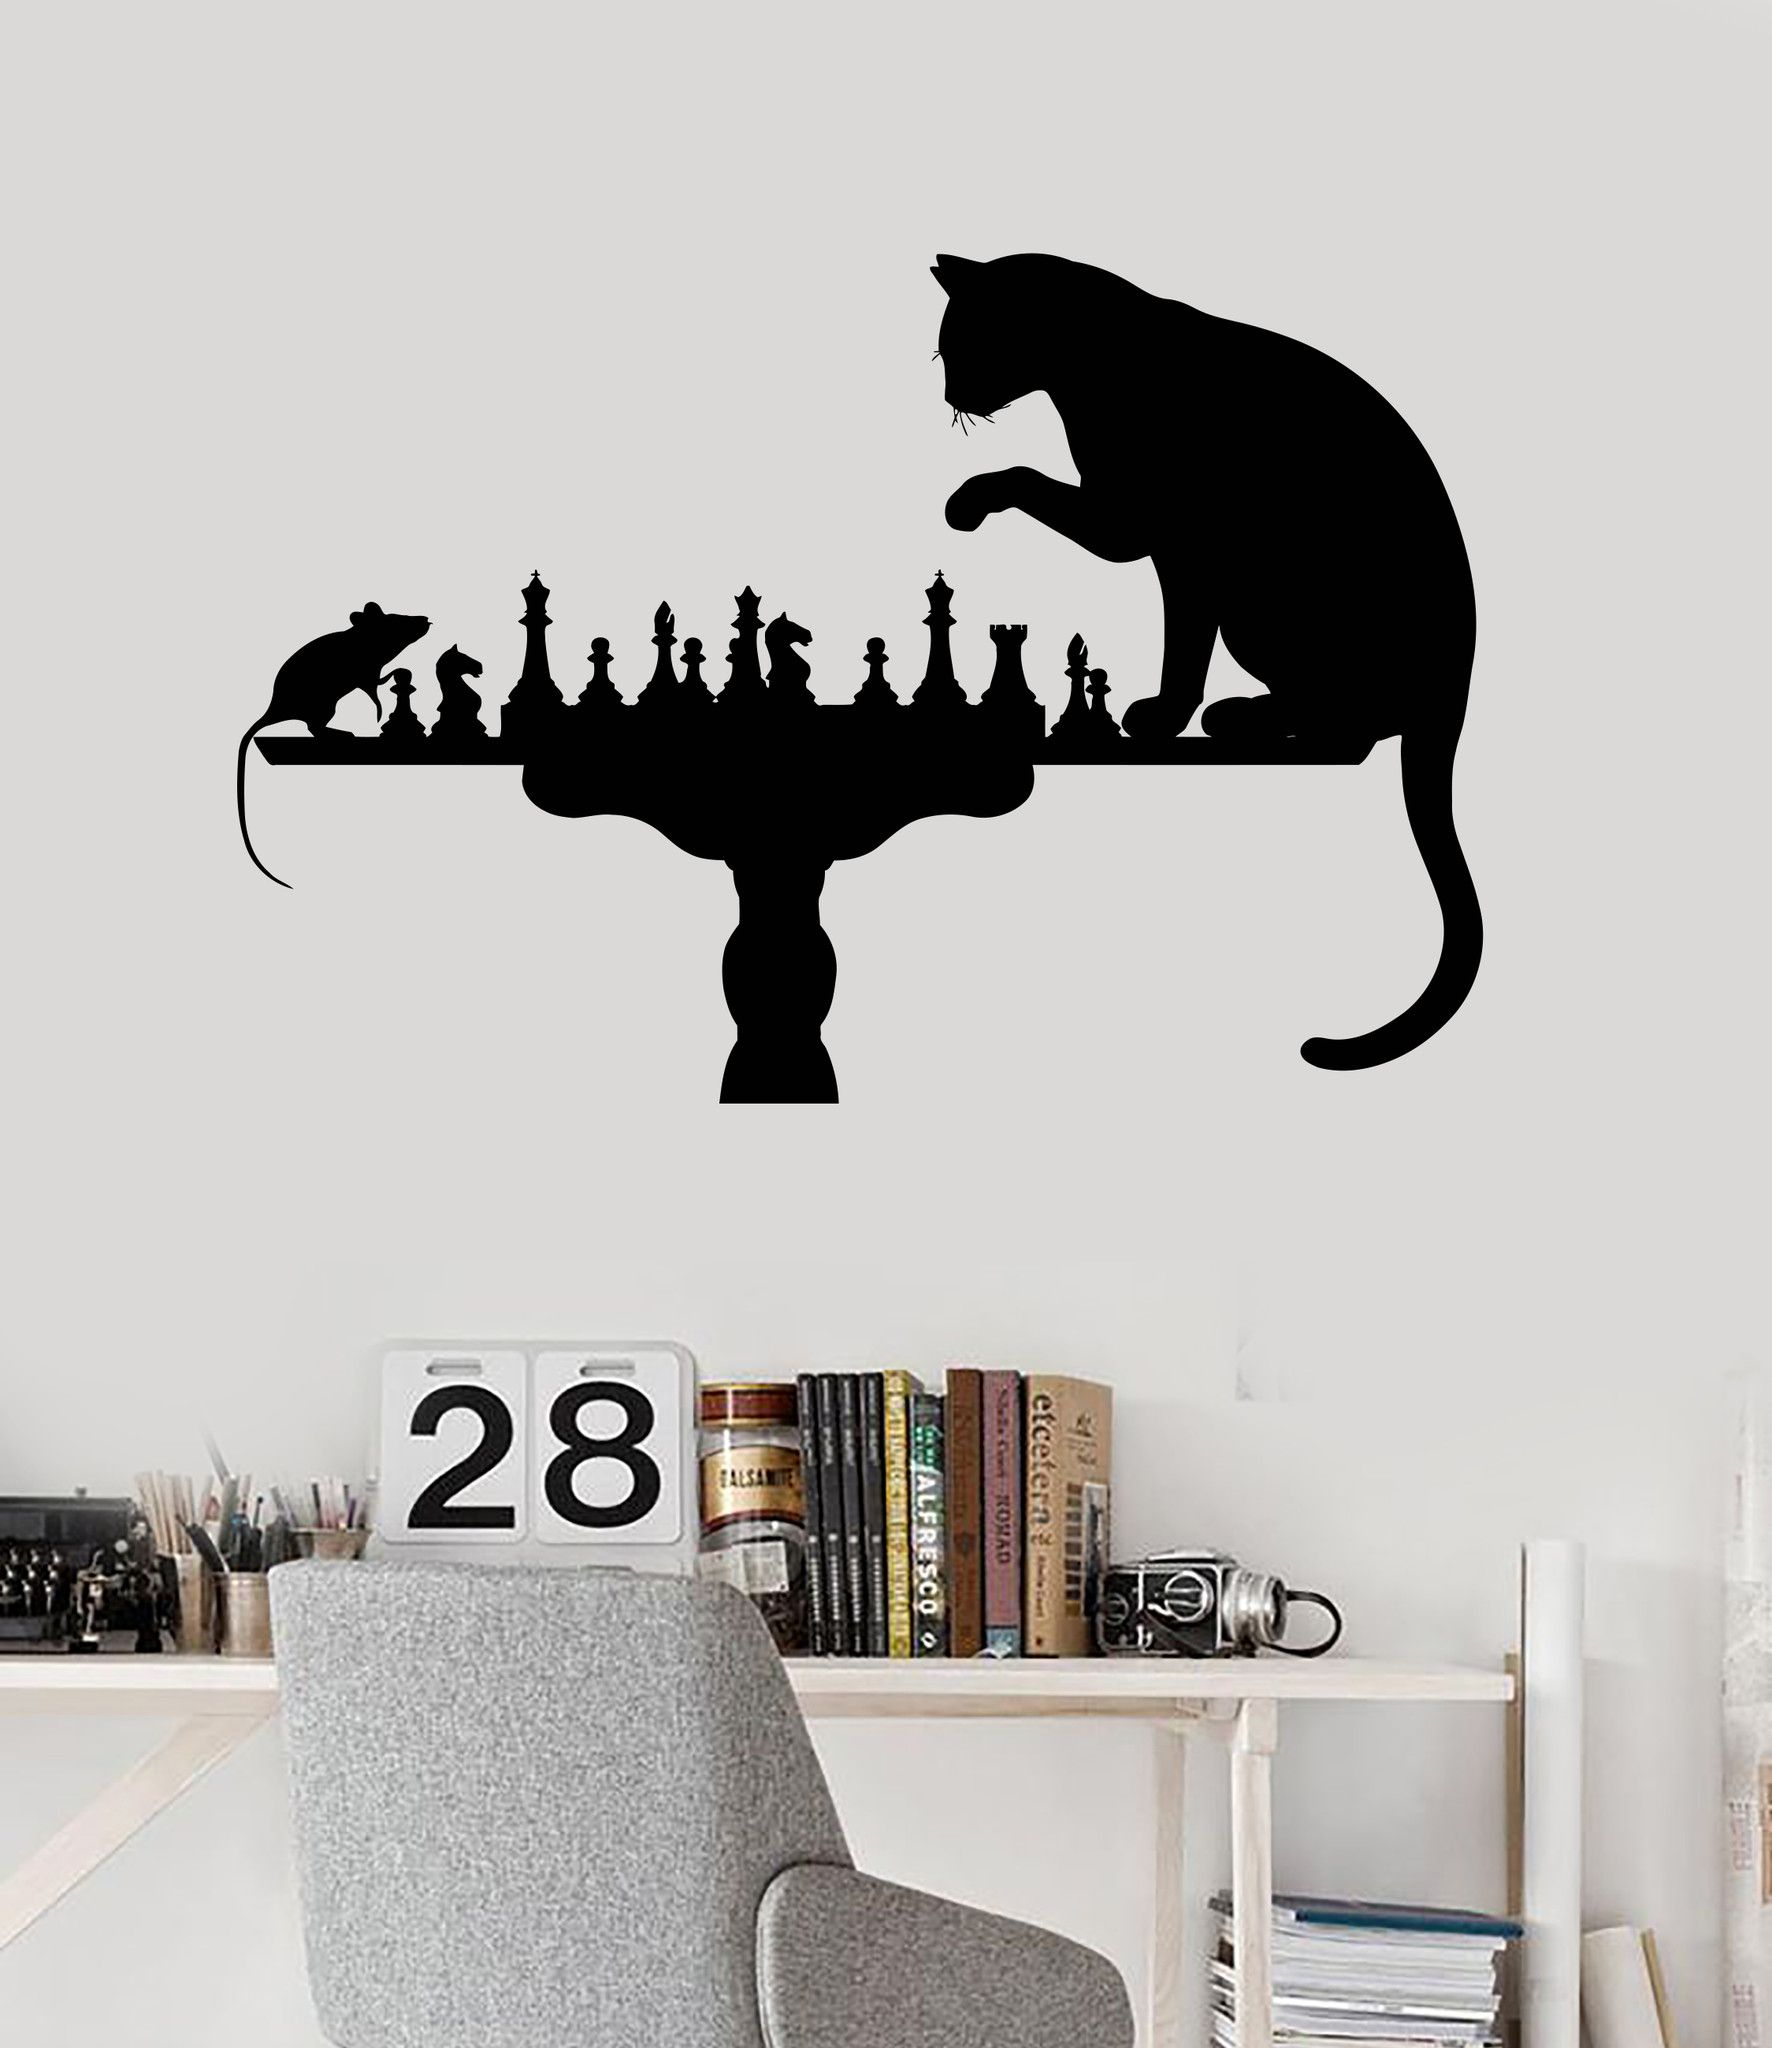 Home Decoration Wall Vinyl Decal Funny Chess Cat Mouse Art - Custom vinyl wall decals cats